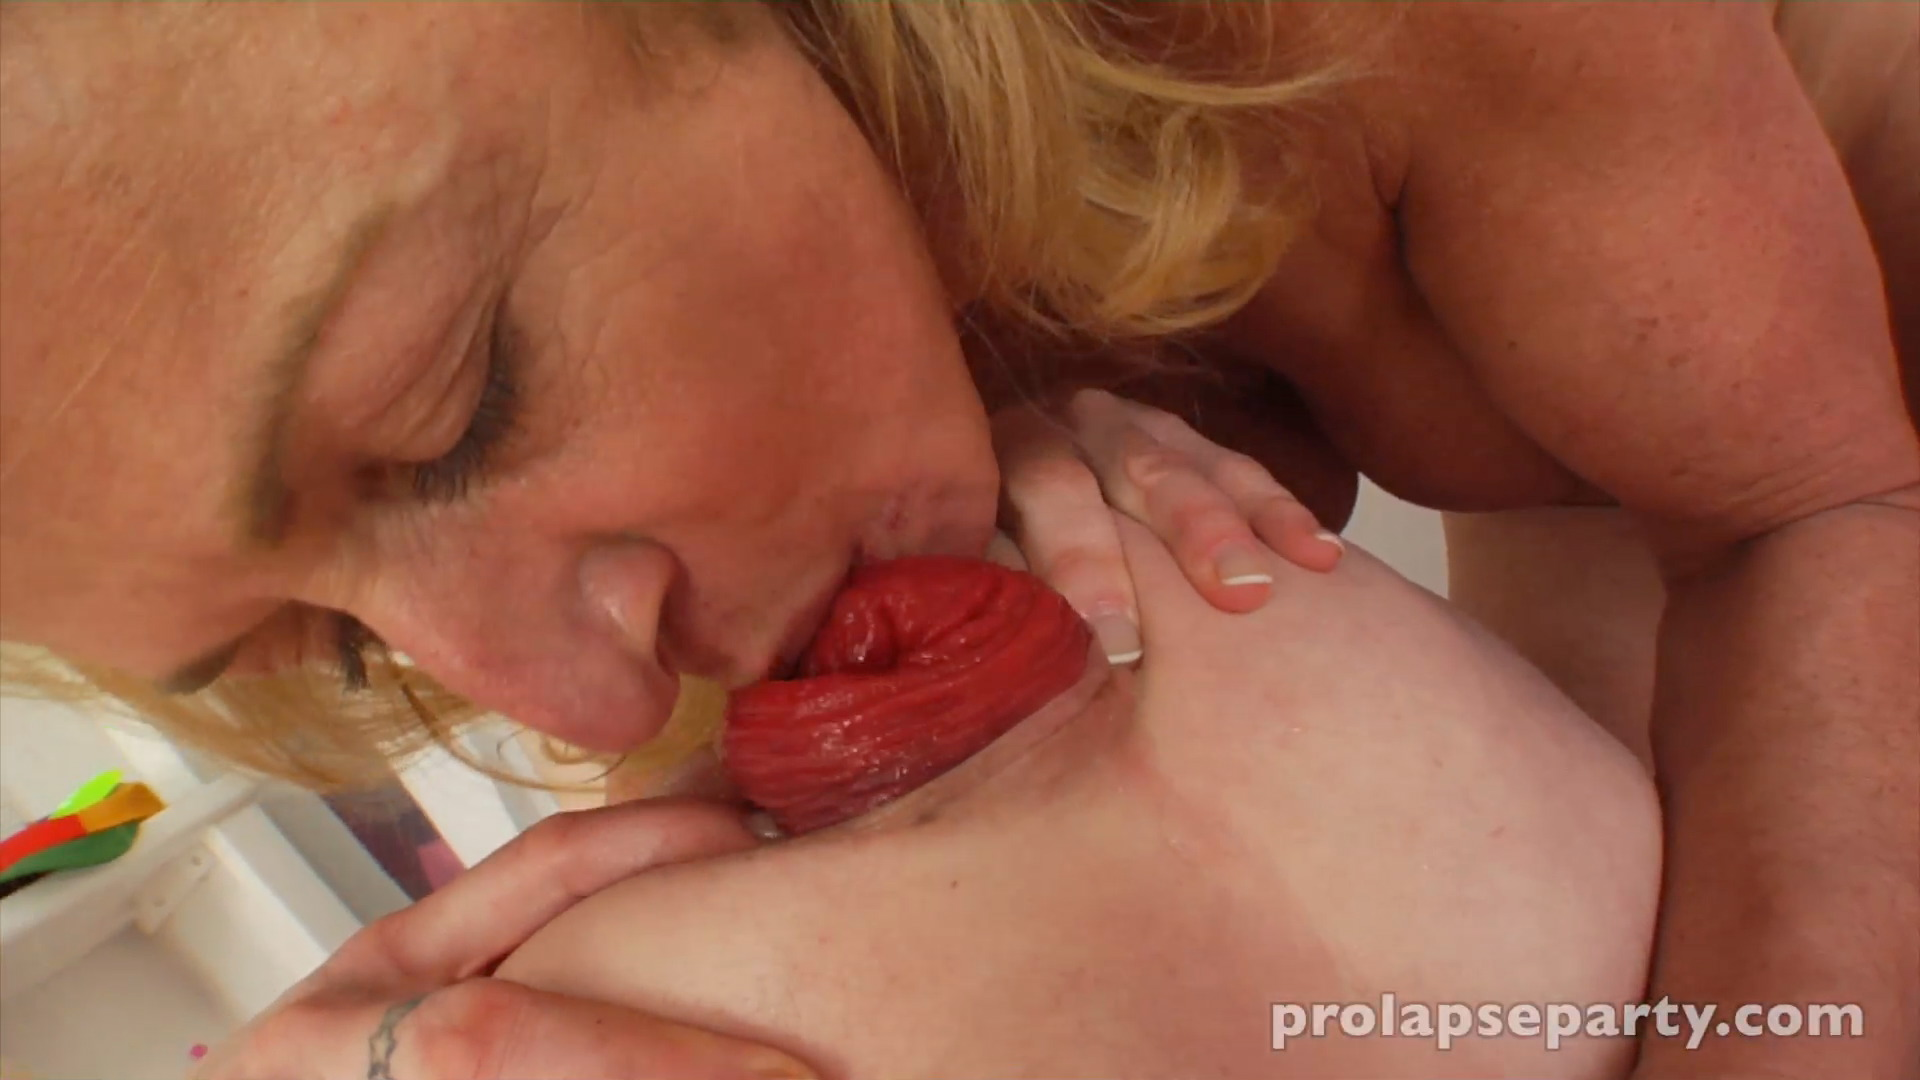 Womans prolapse sucked out of her ass with a pump 6